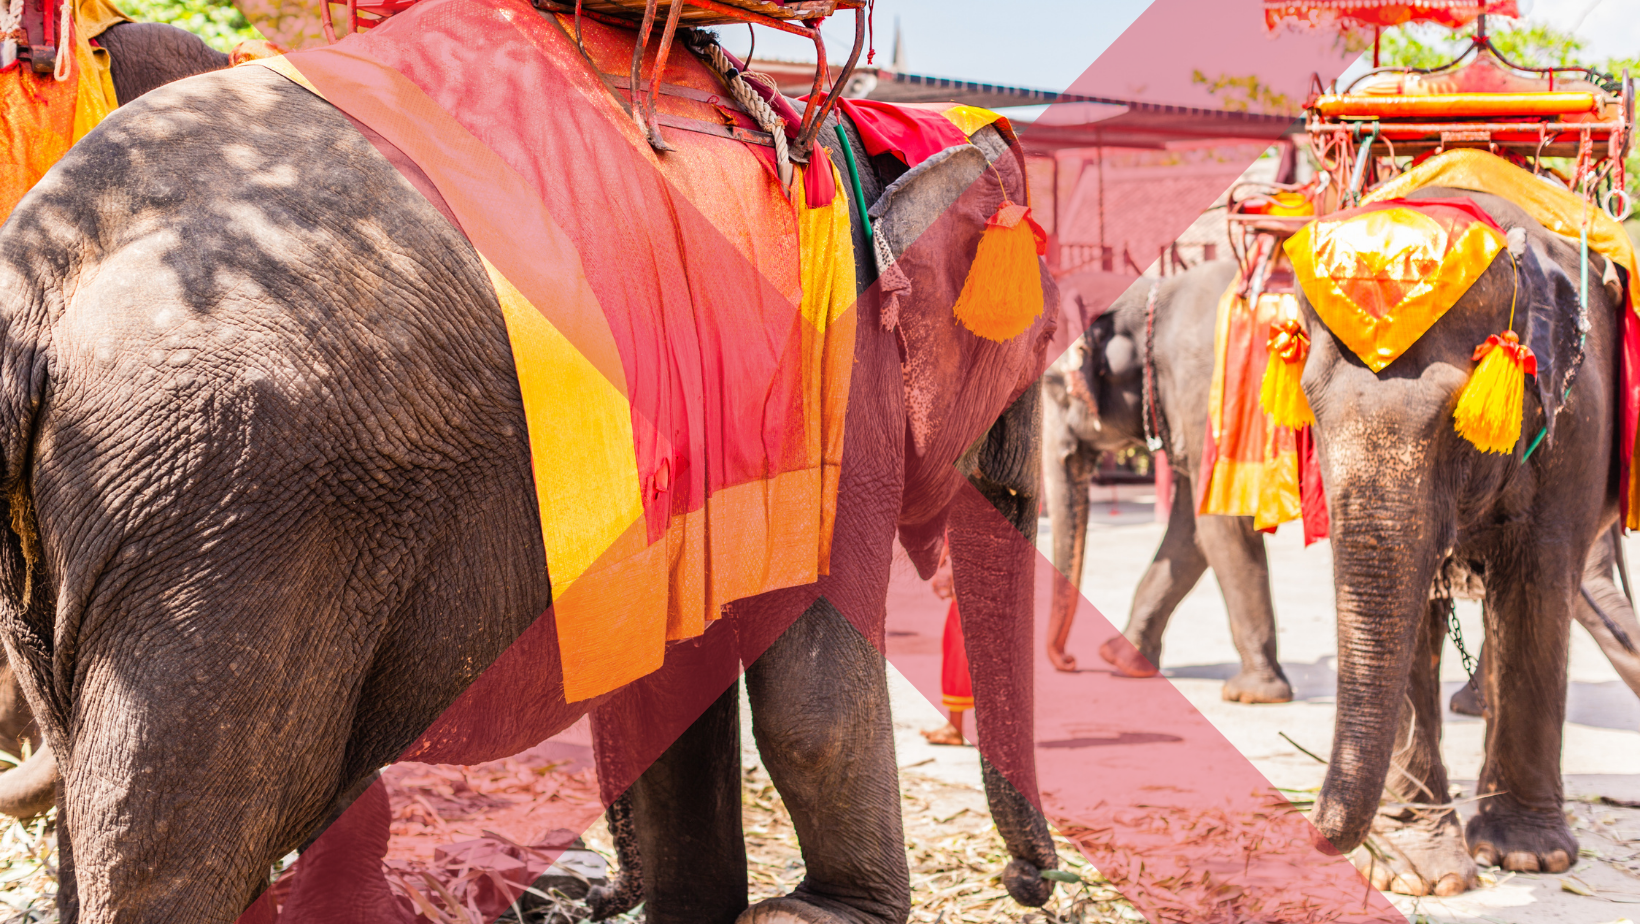 Elephants used for cruel riding operations for paying tourists.